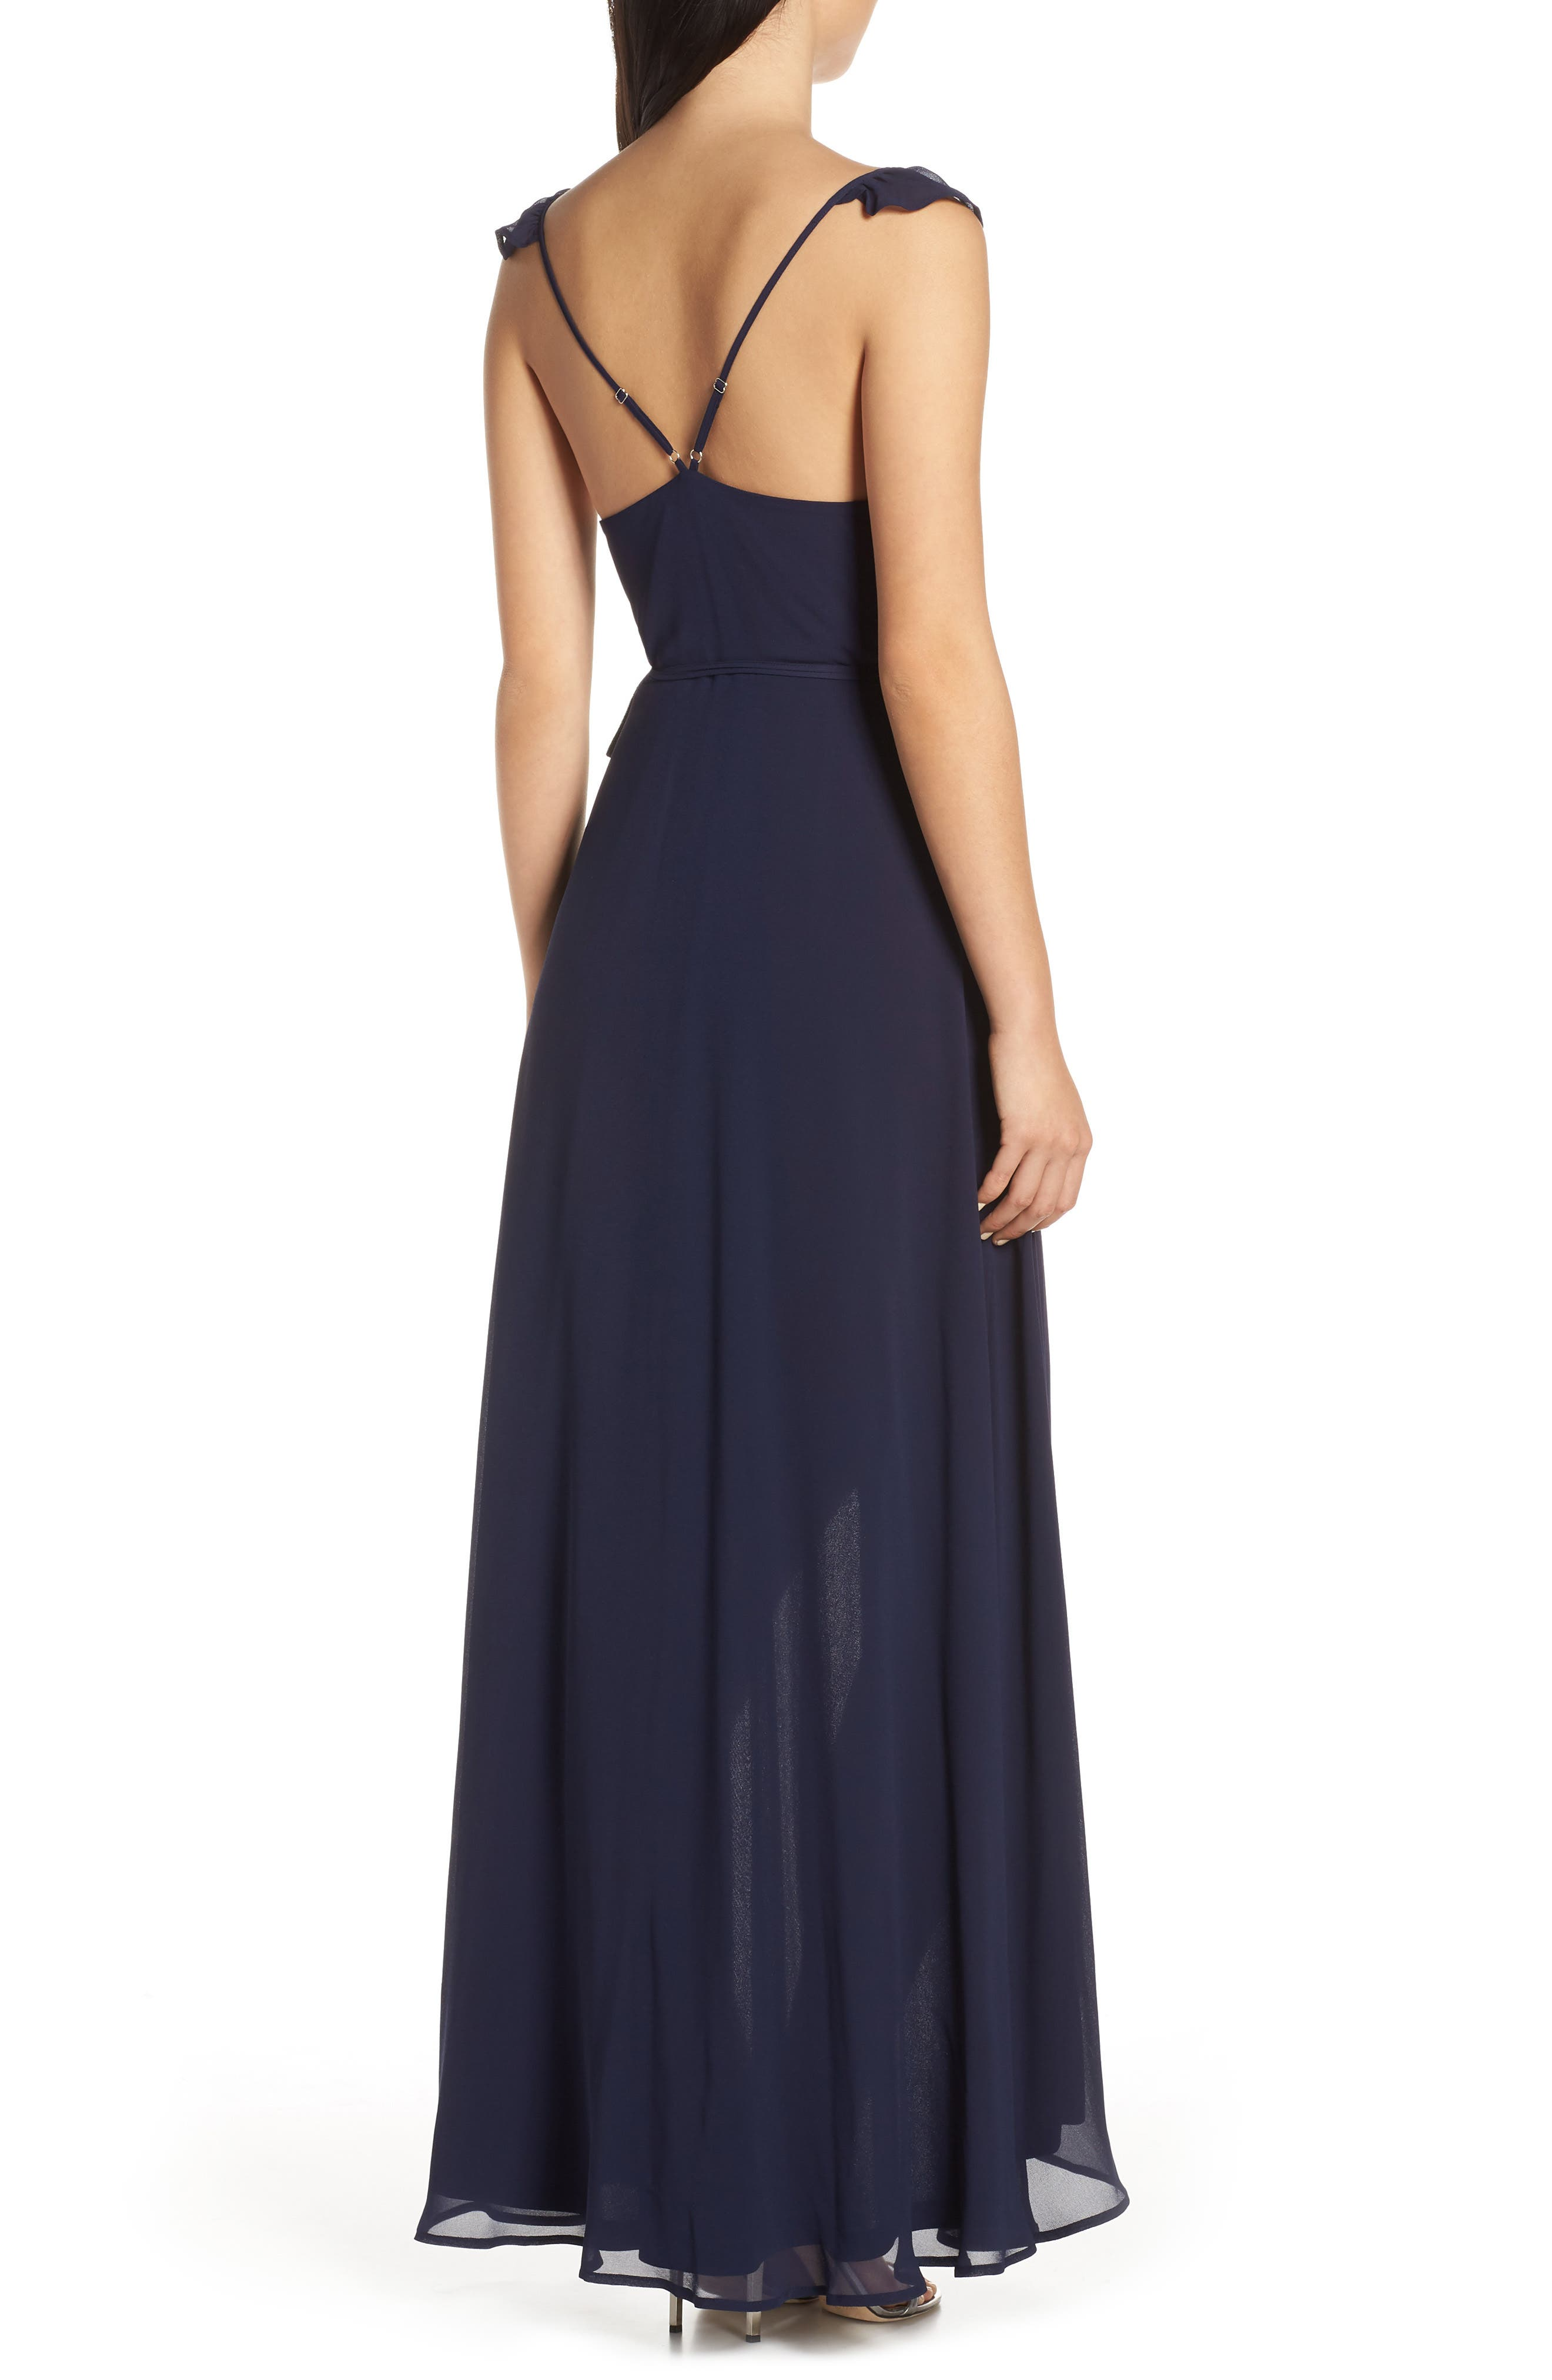 LULUS,                             Here's to Us High/Low Wrap Evening Dress,                             Alternate thumbnail 2, color,                             NAVY